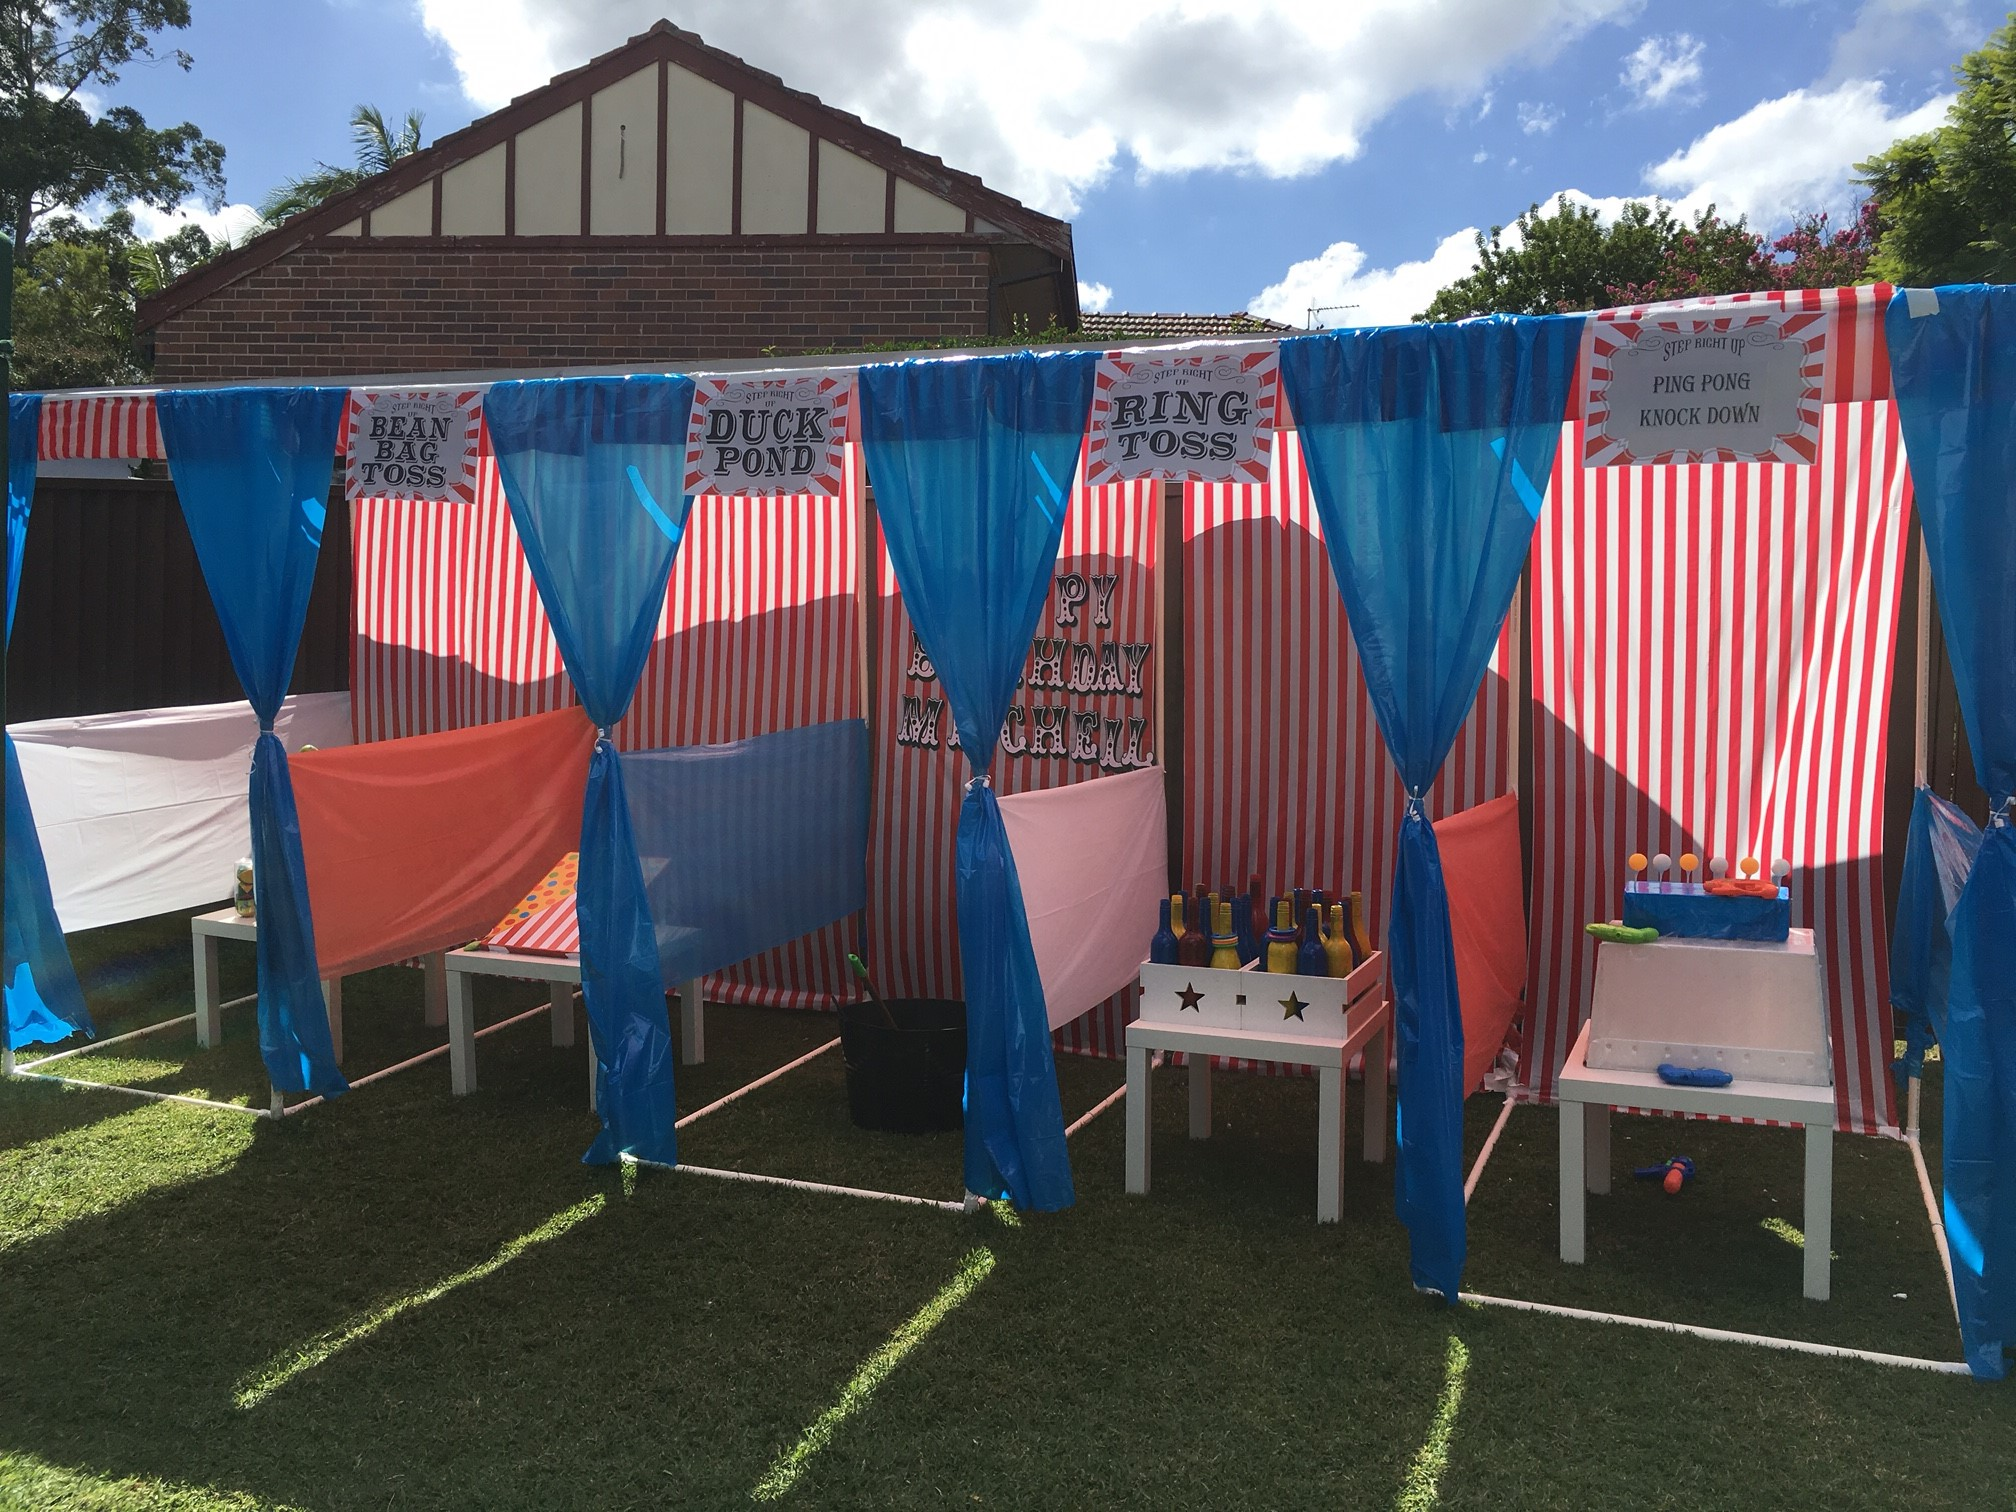 Children's carnival game stalls built with PVC connectors and pipe